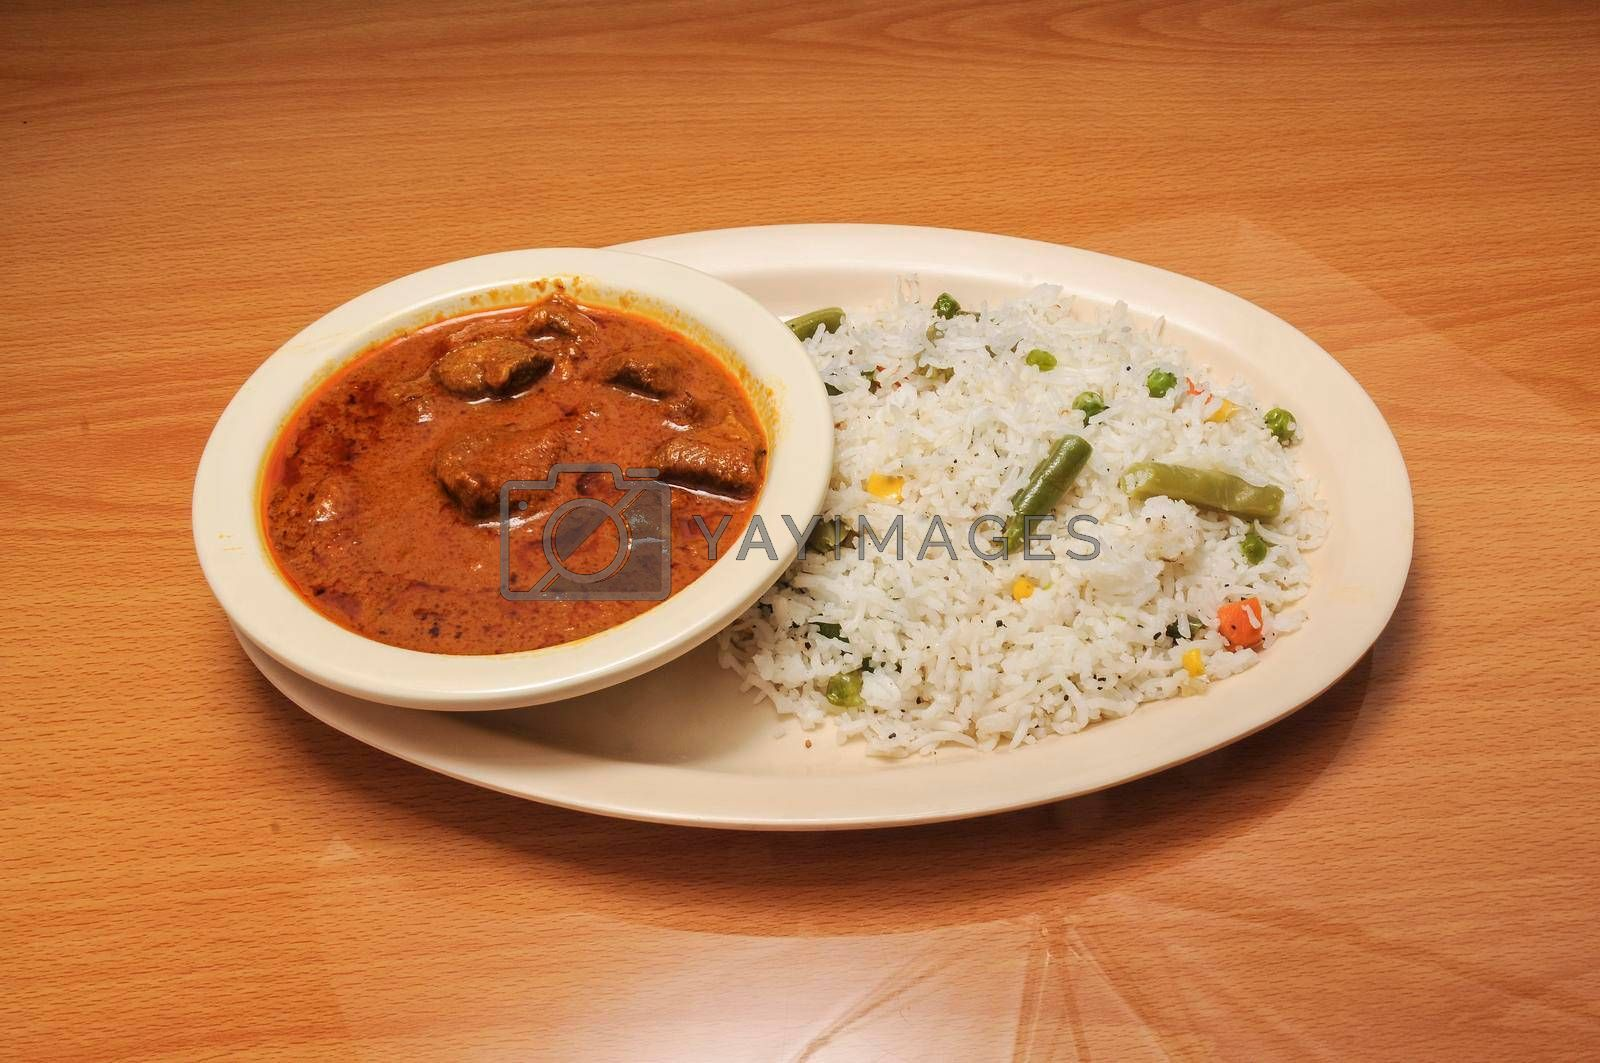 Delicious and authentic cuisine known as lamb curry